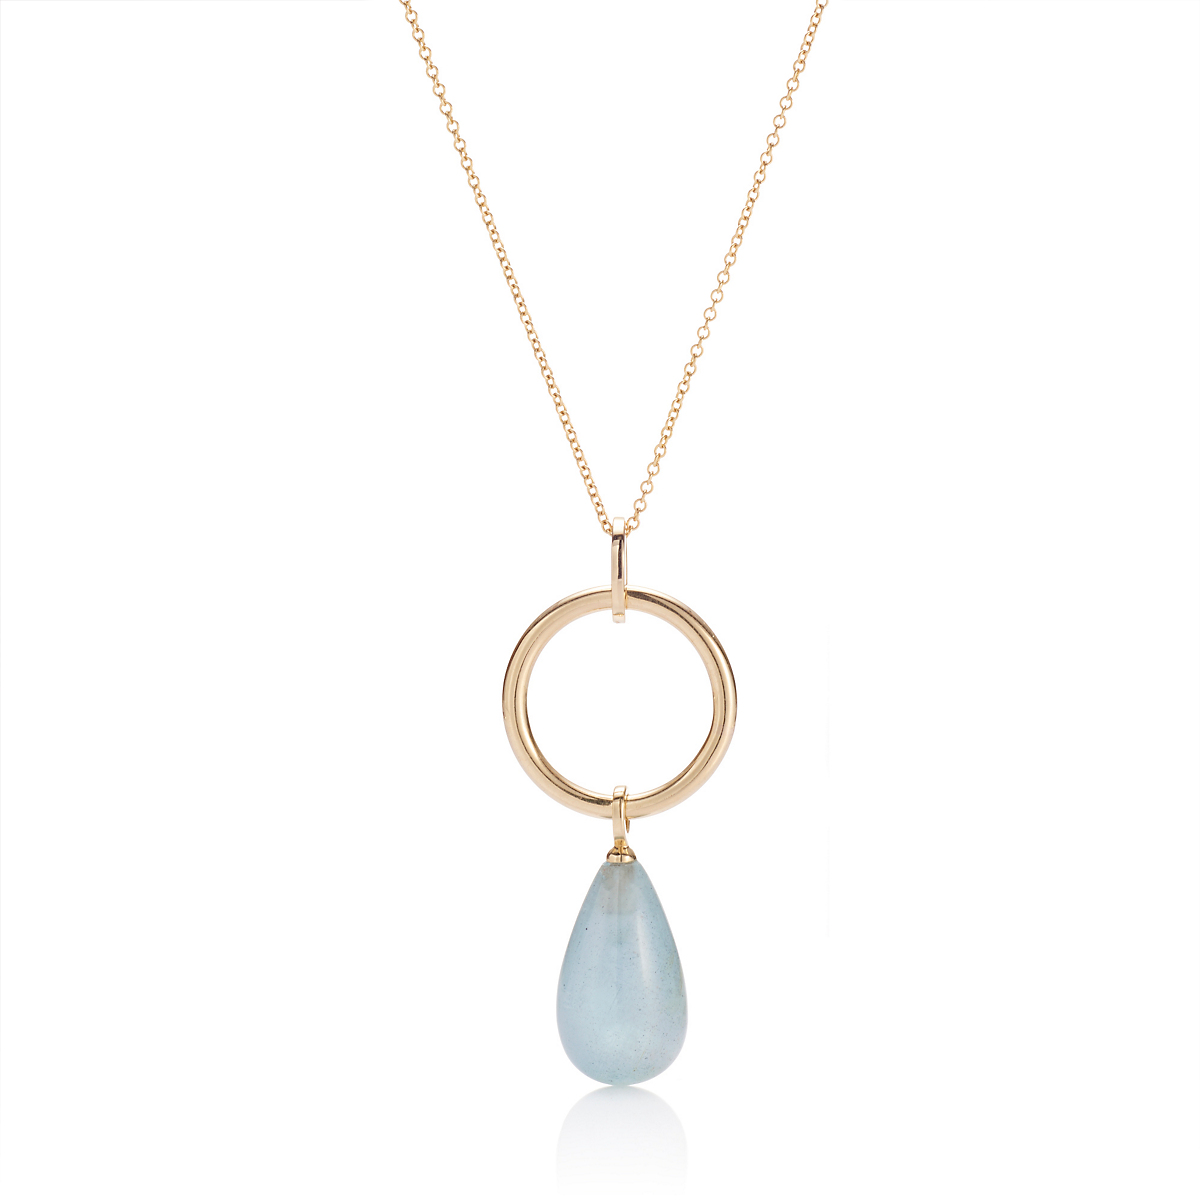 Gump's Gold Hoop & Aquamarine Drop Pendant Necklace